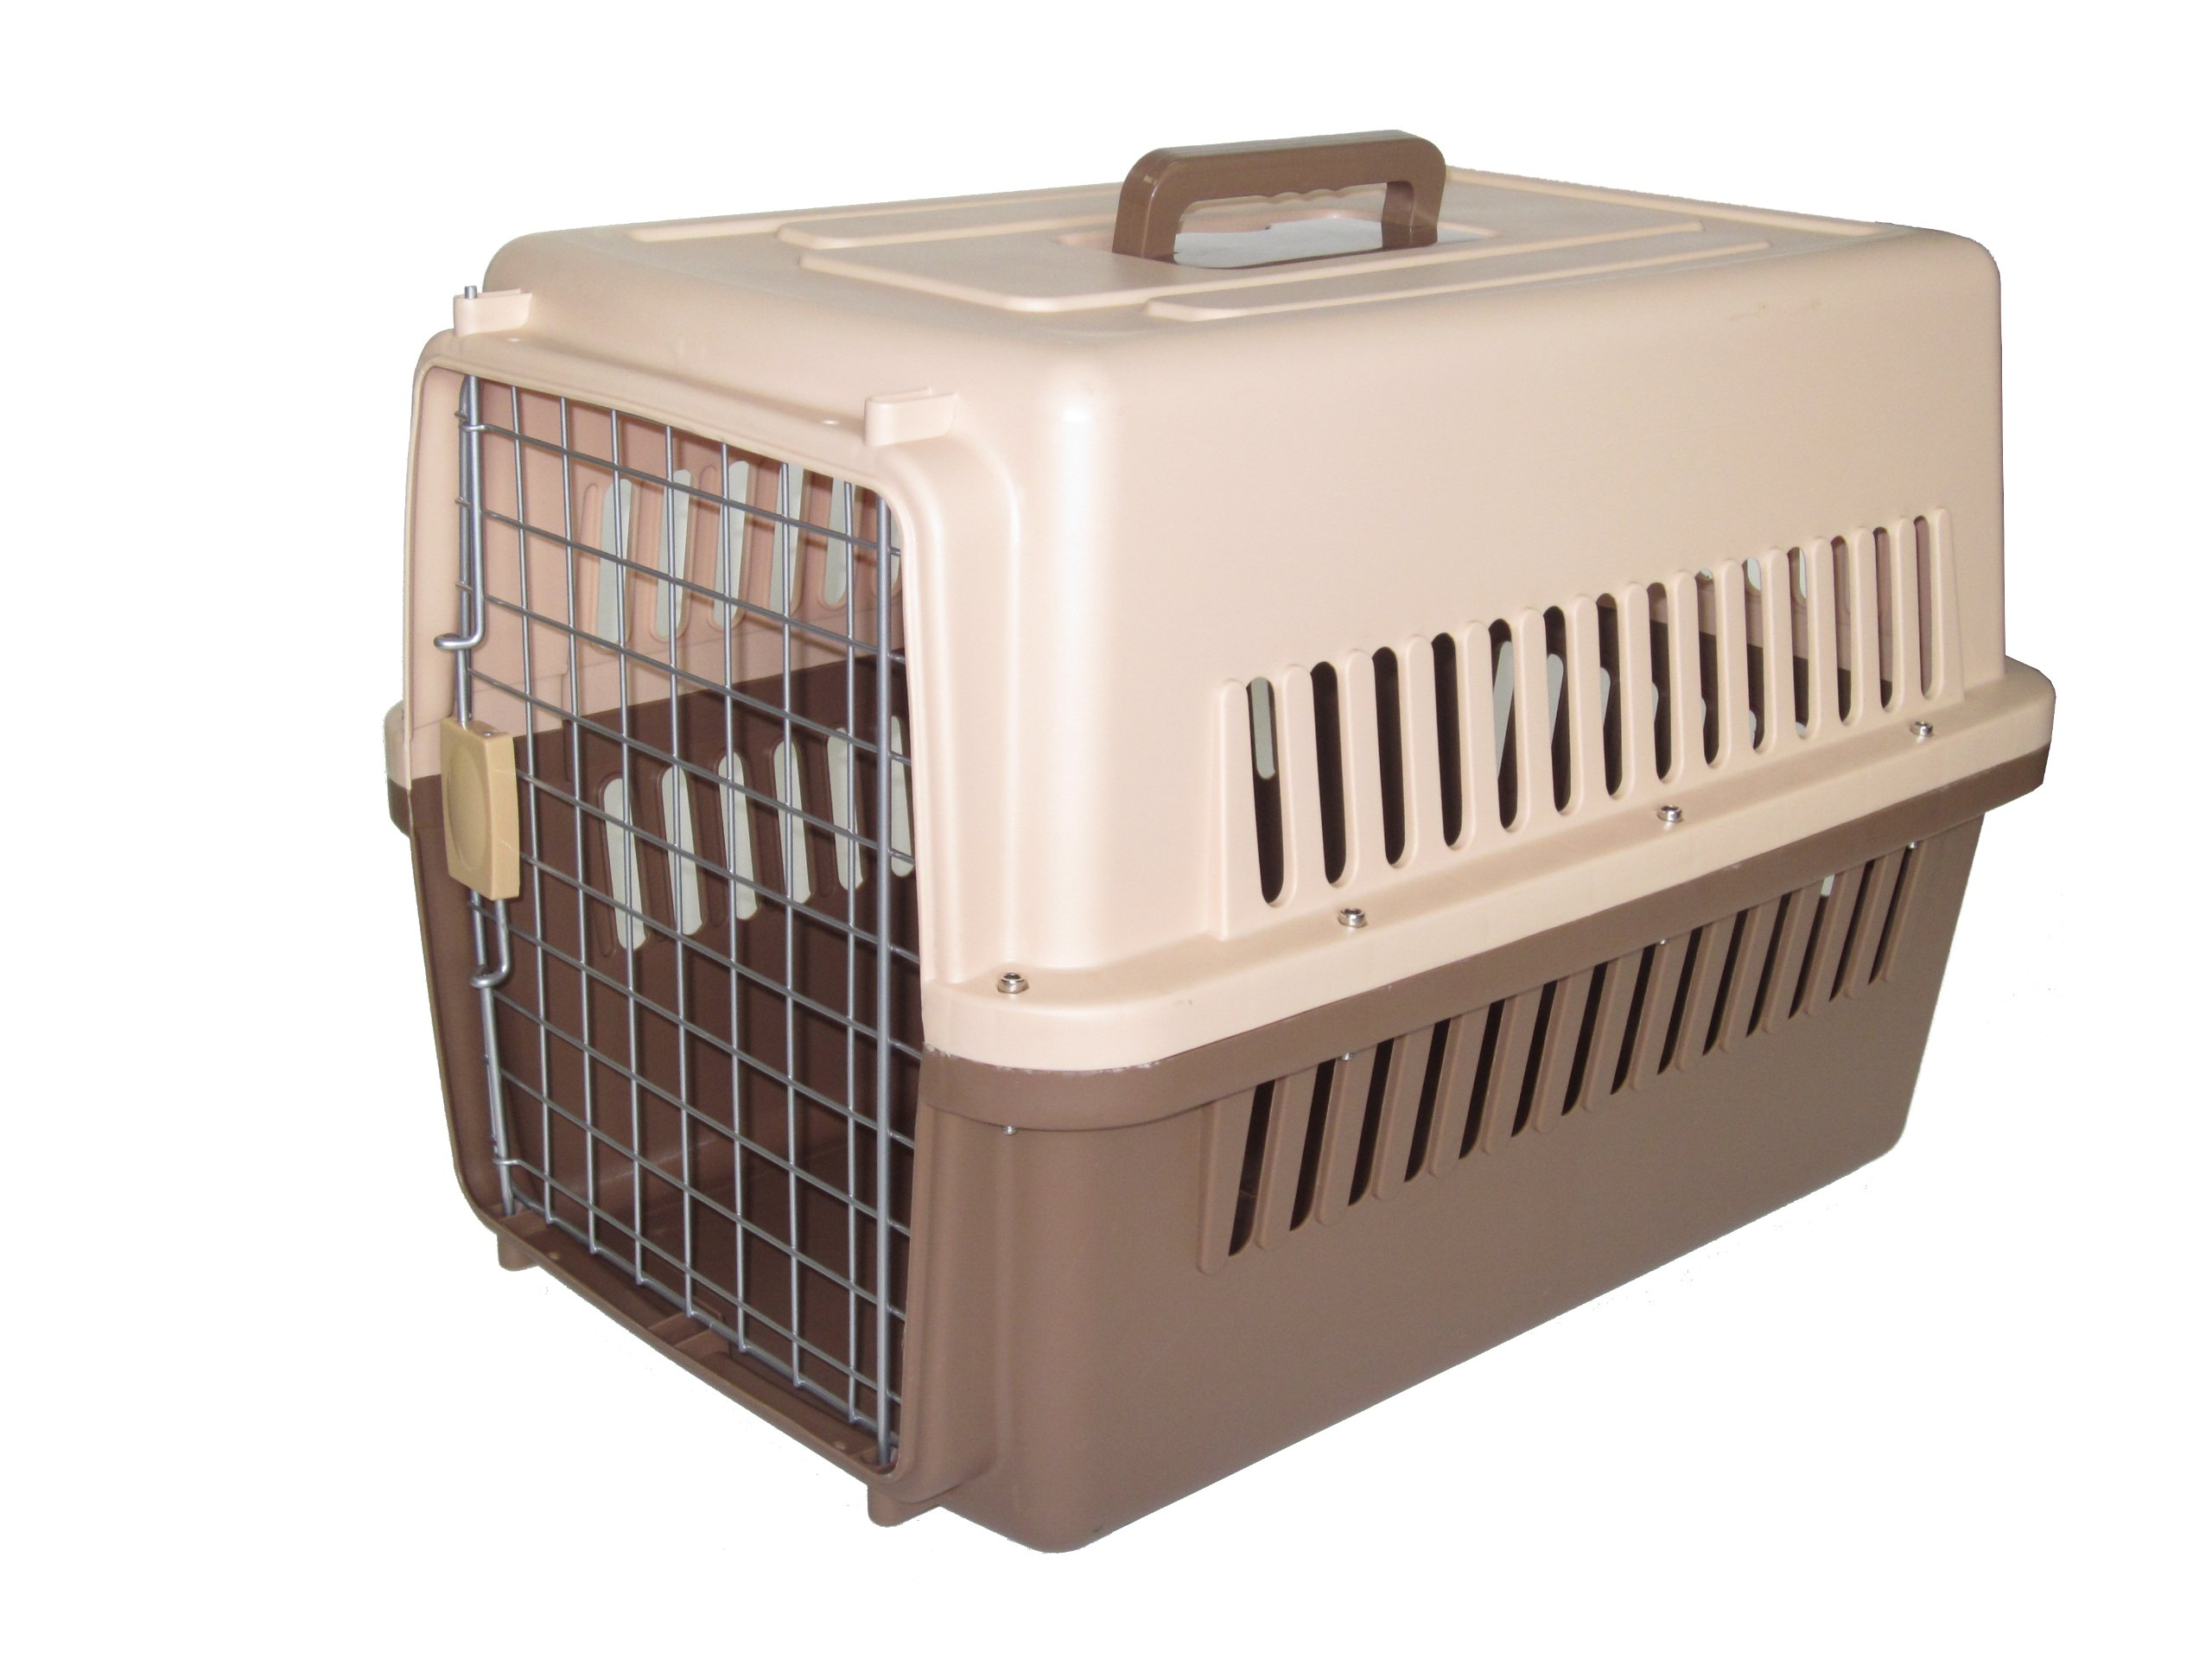 YML 31.5-Inch by 21.5-Inch by 24-Inch Travel Carrier Pet Kennel with Beige and Dark Brown Bottom, Medium